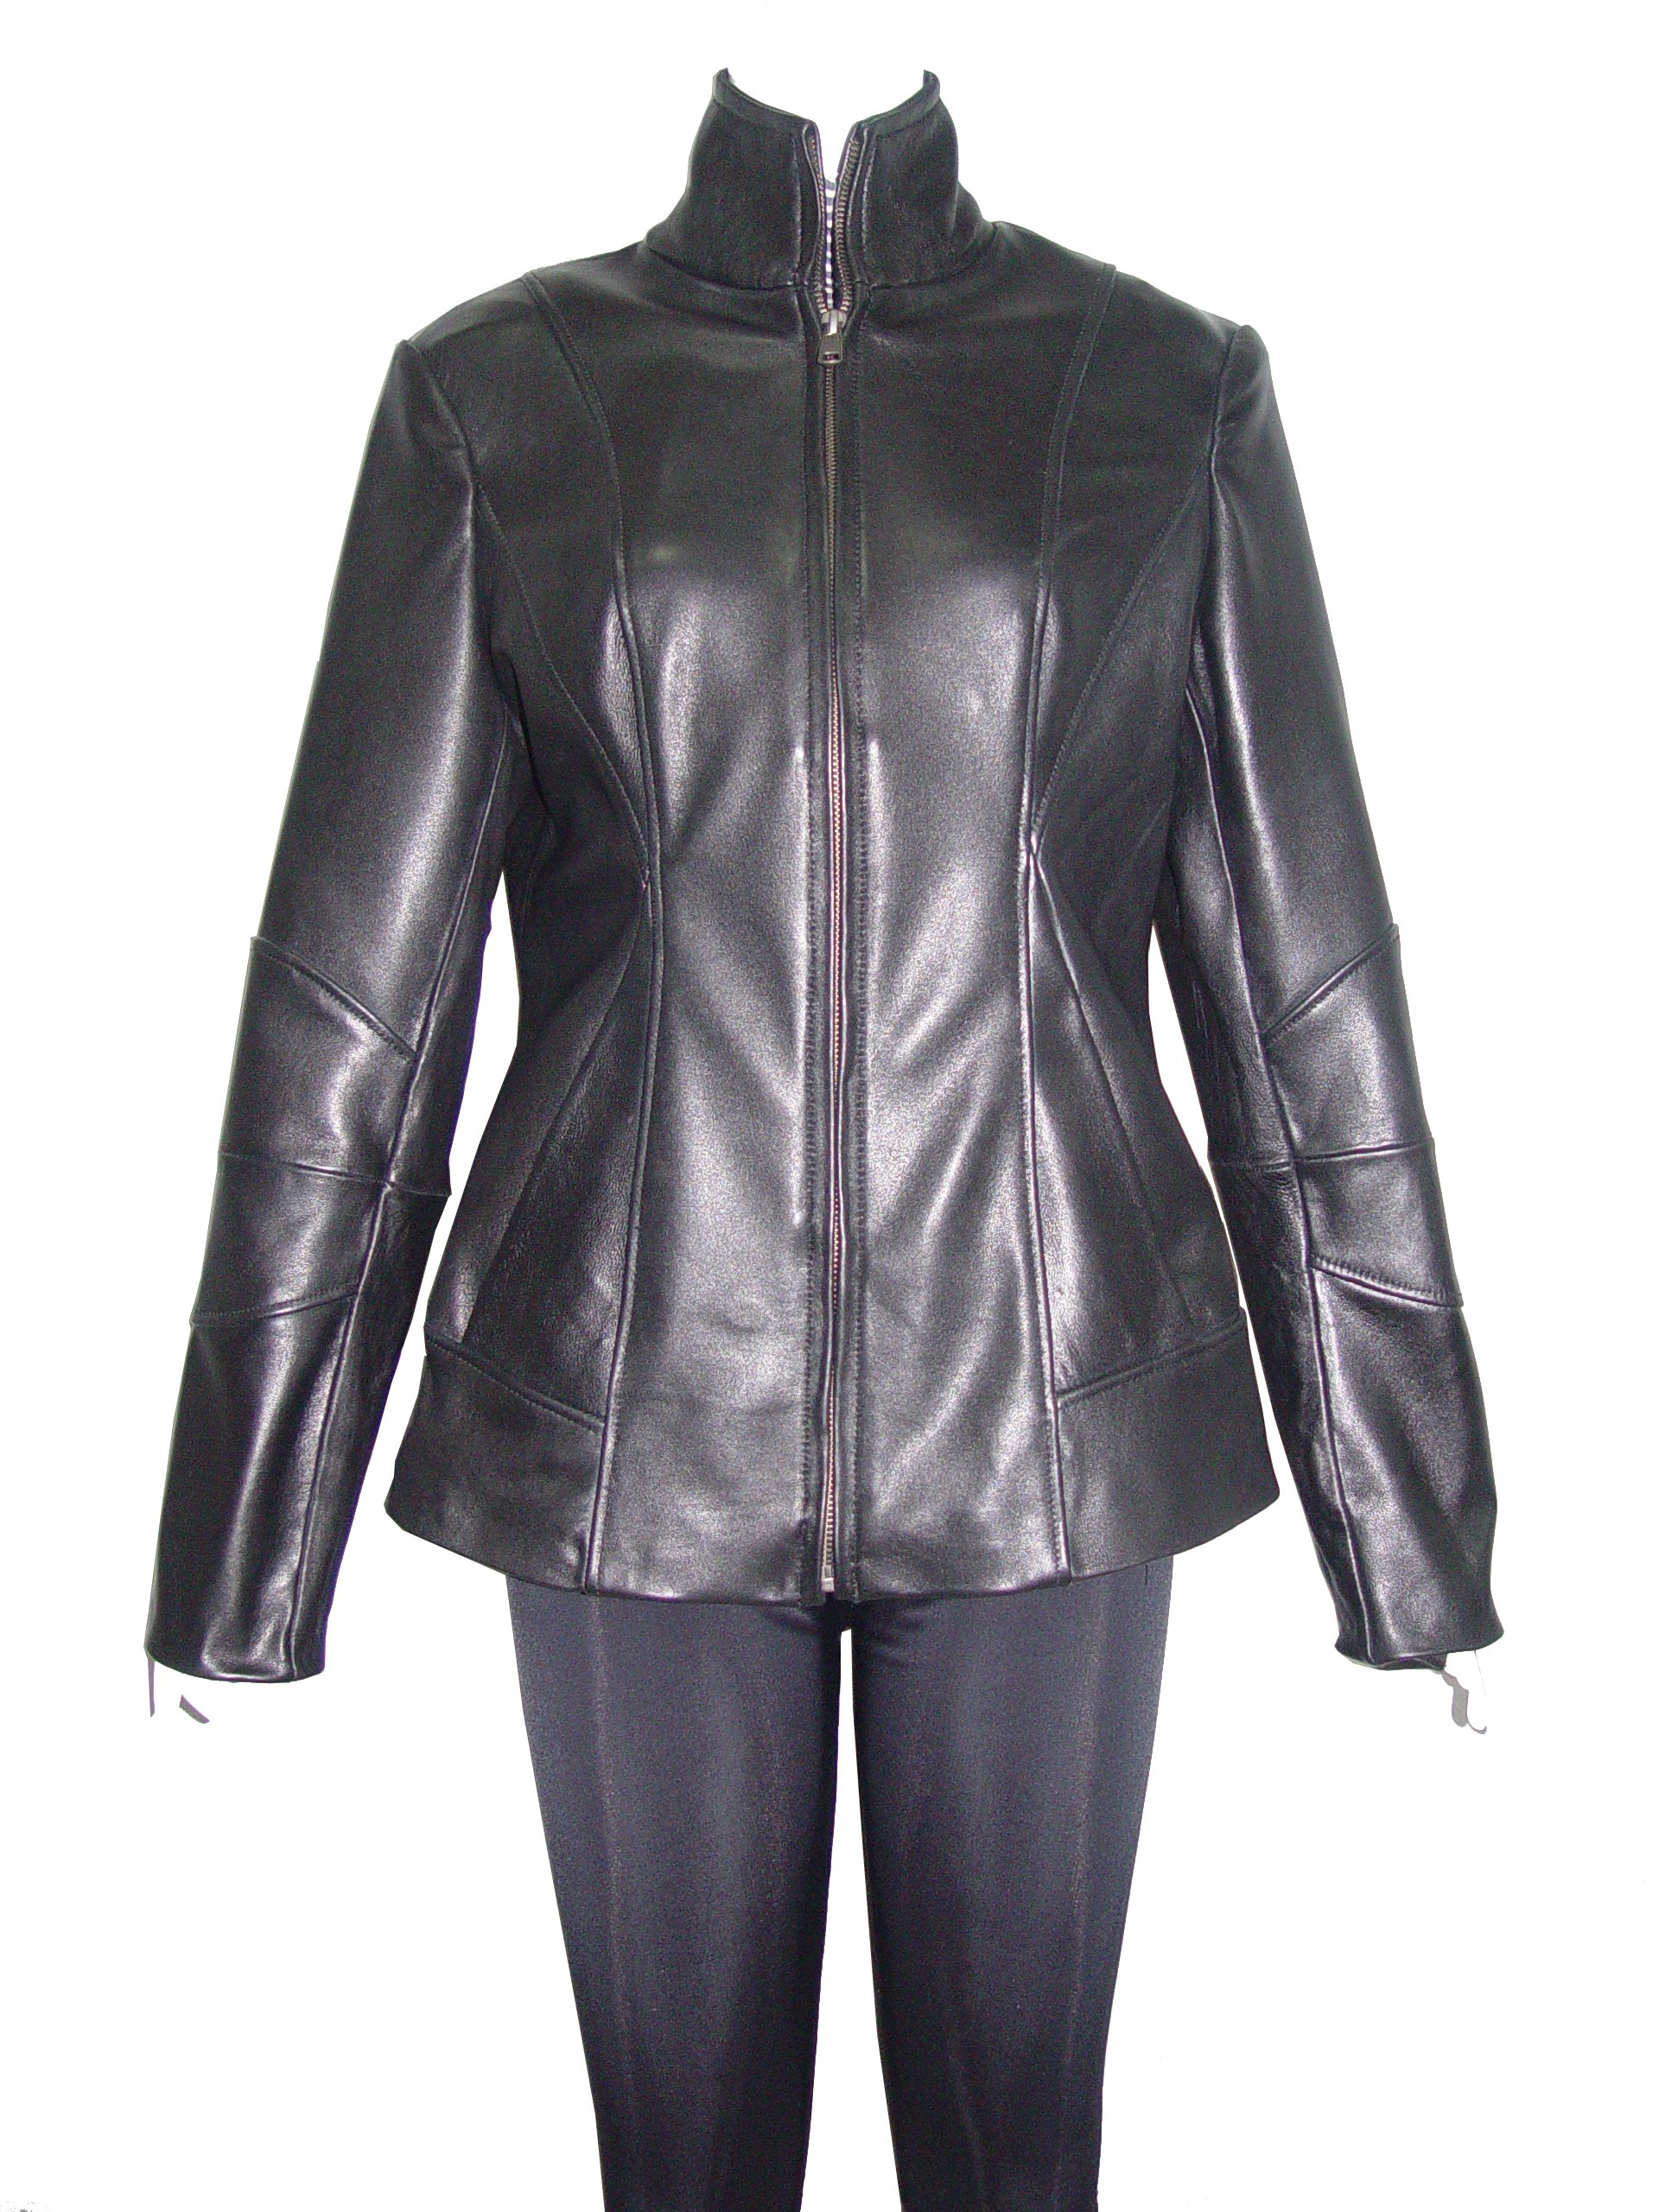 Nettailor 4201 Real Leather Jackets Best Cool Long Stylish Expensive Lining